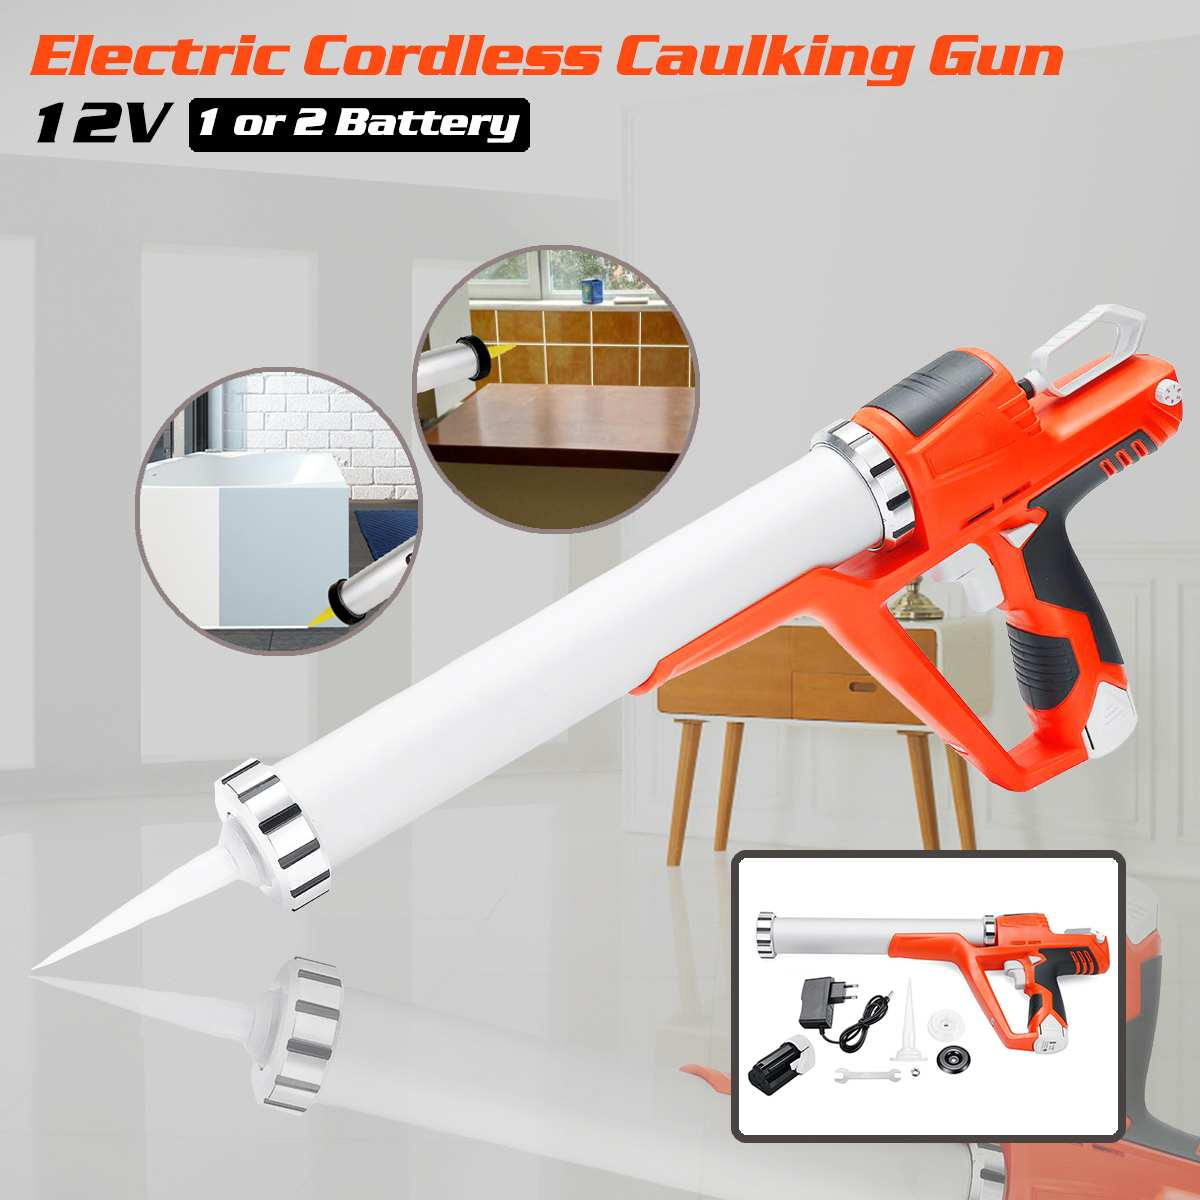 New Home DIY Electric Cordless Caulking Guns With 1.5AH 2 Li-Batteries 12V Max Handheld Glass Hard Rubber Sealant Guns Tools Kit